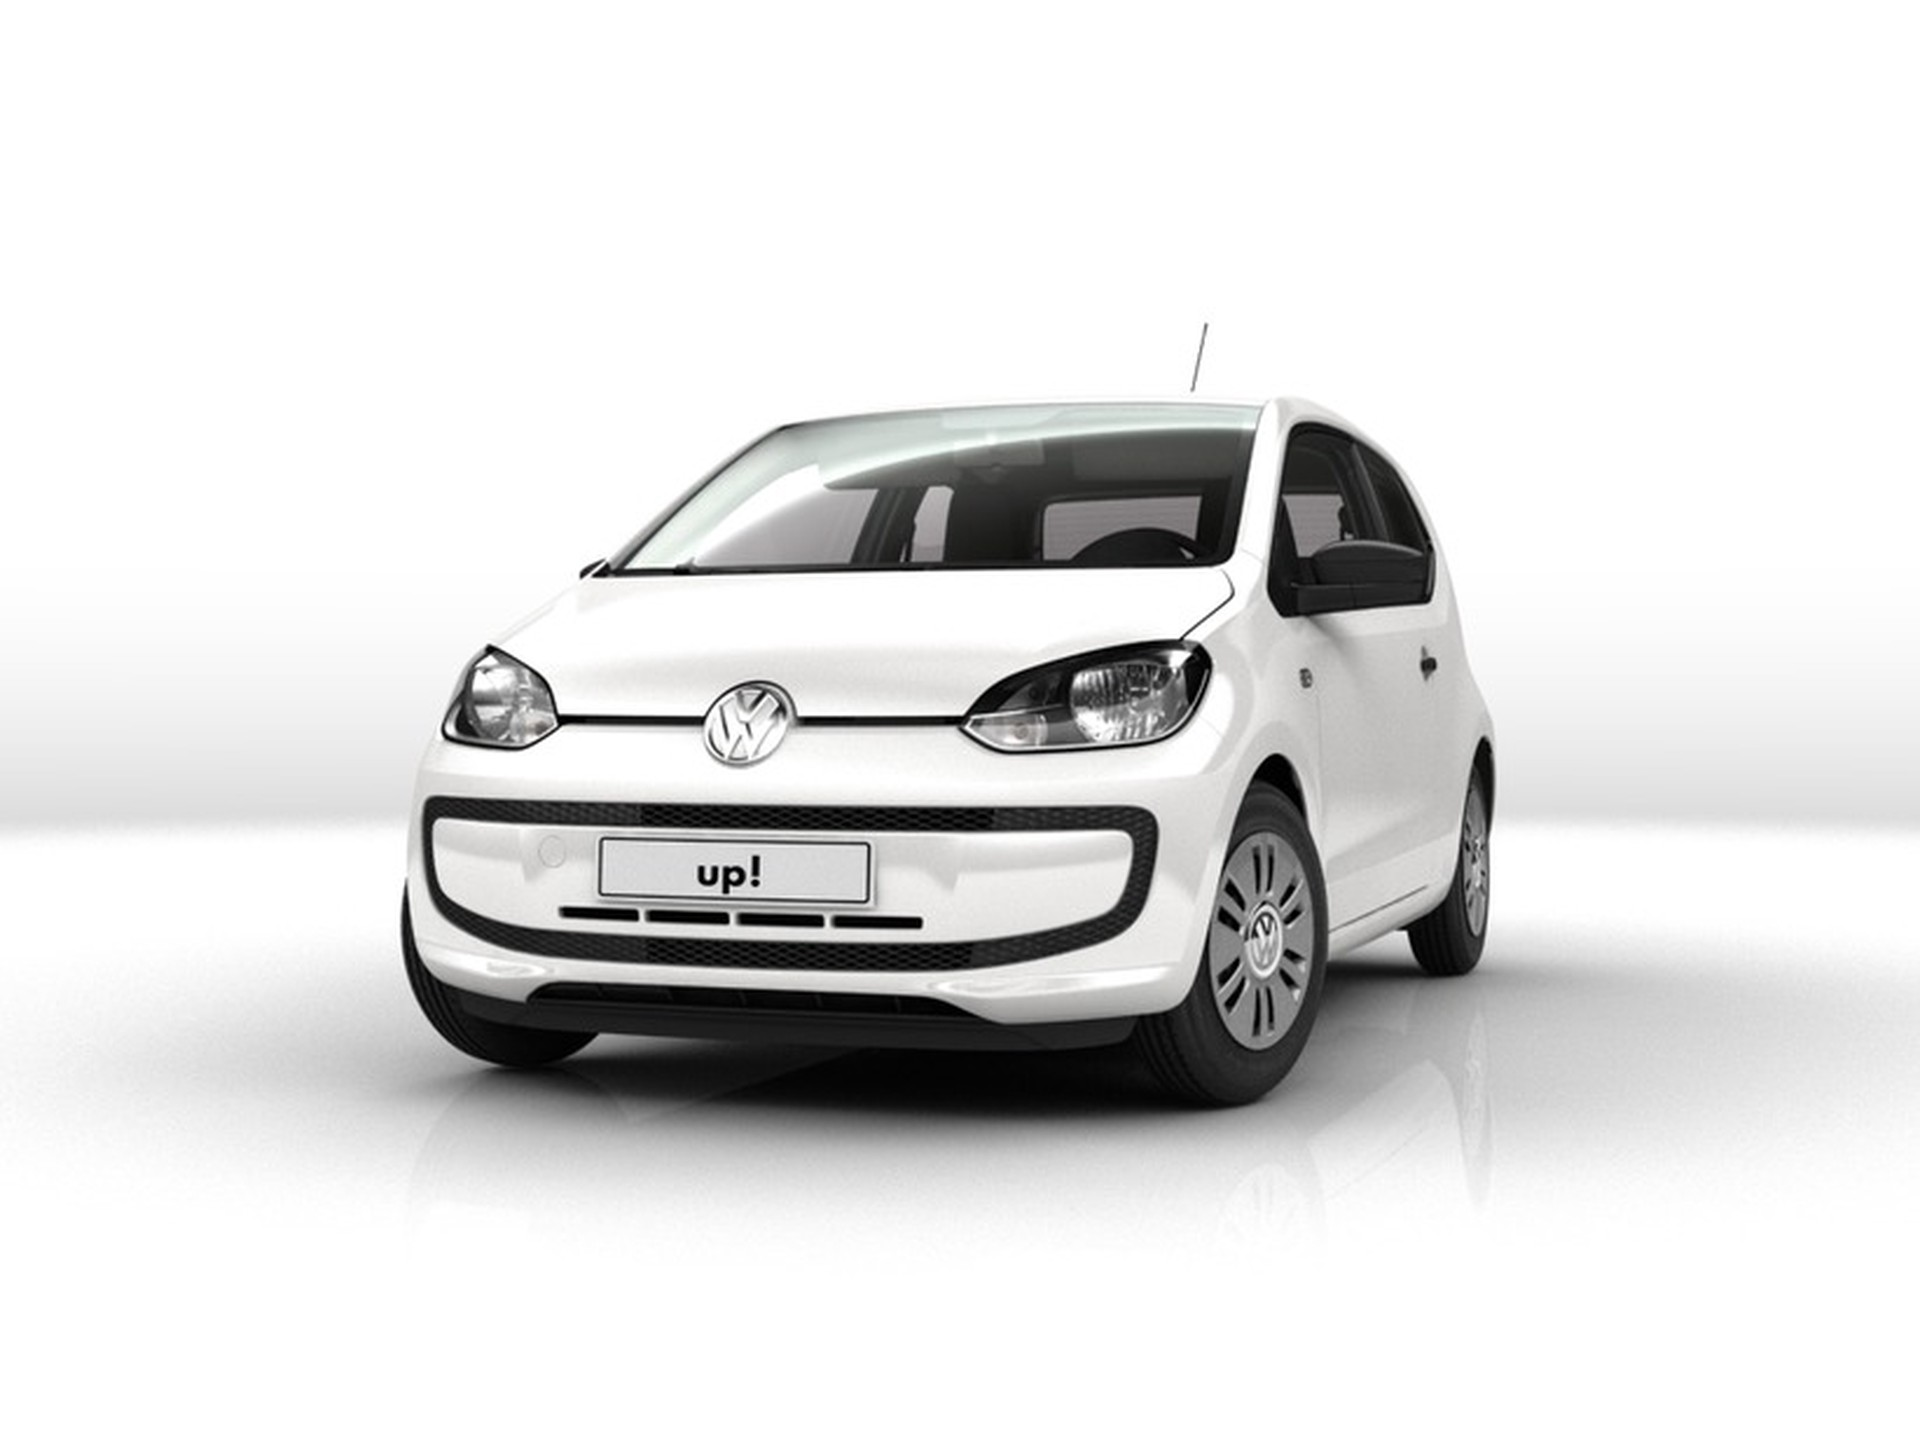 Volkswagen-up!-1.0 take up! BlueMotion Nieuw en Financial lease-nieuweautodeal.nl